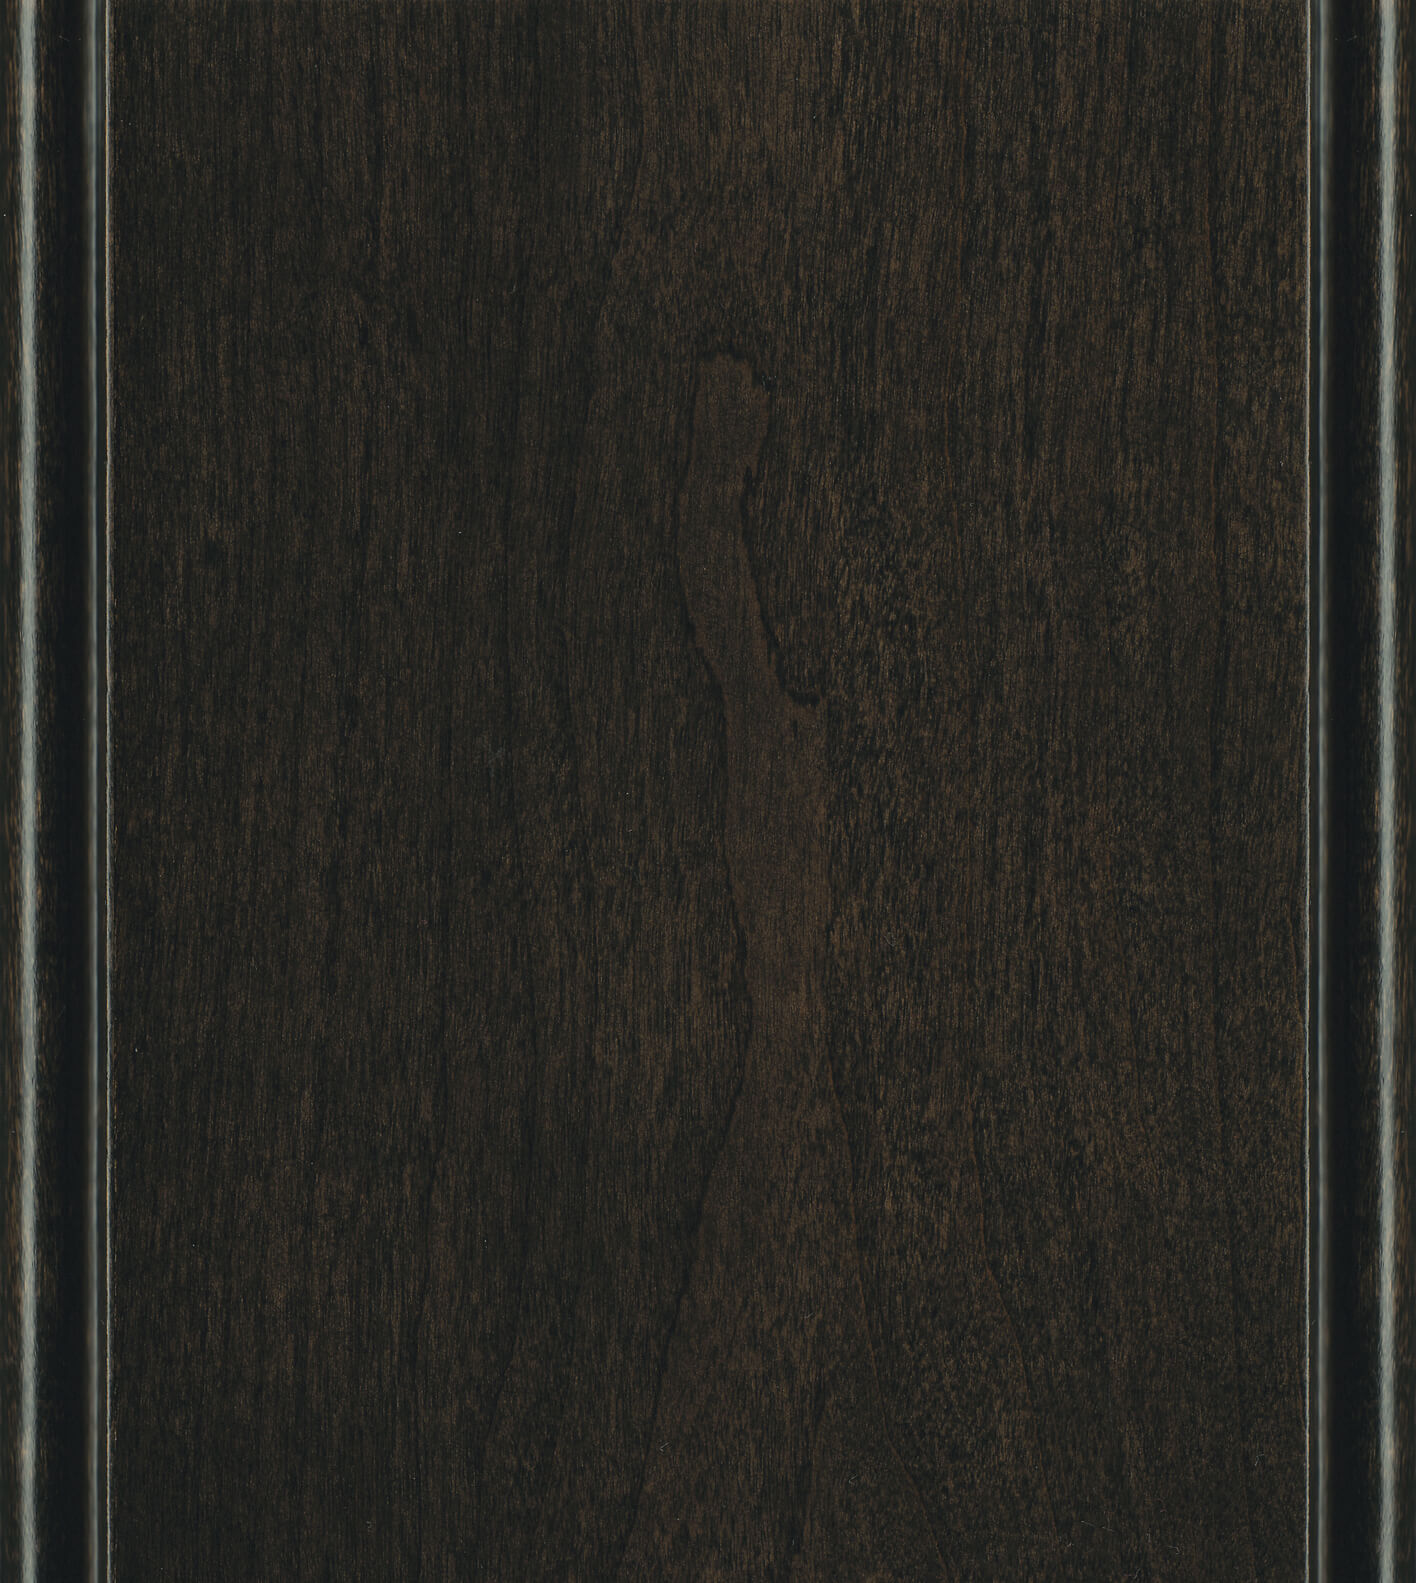 Onyx Stain on Cherry